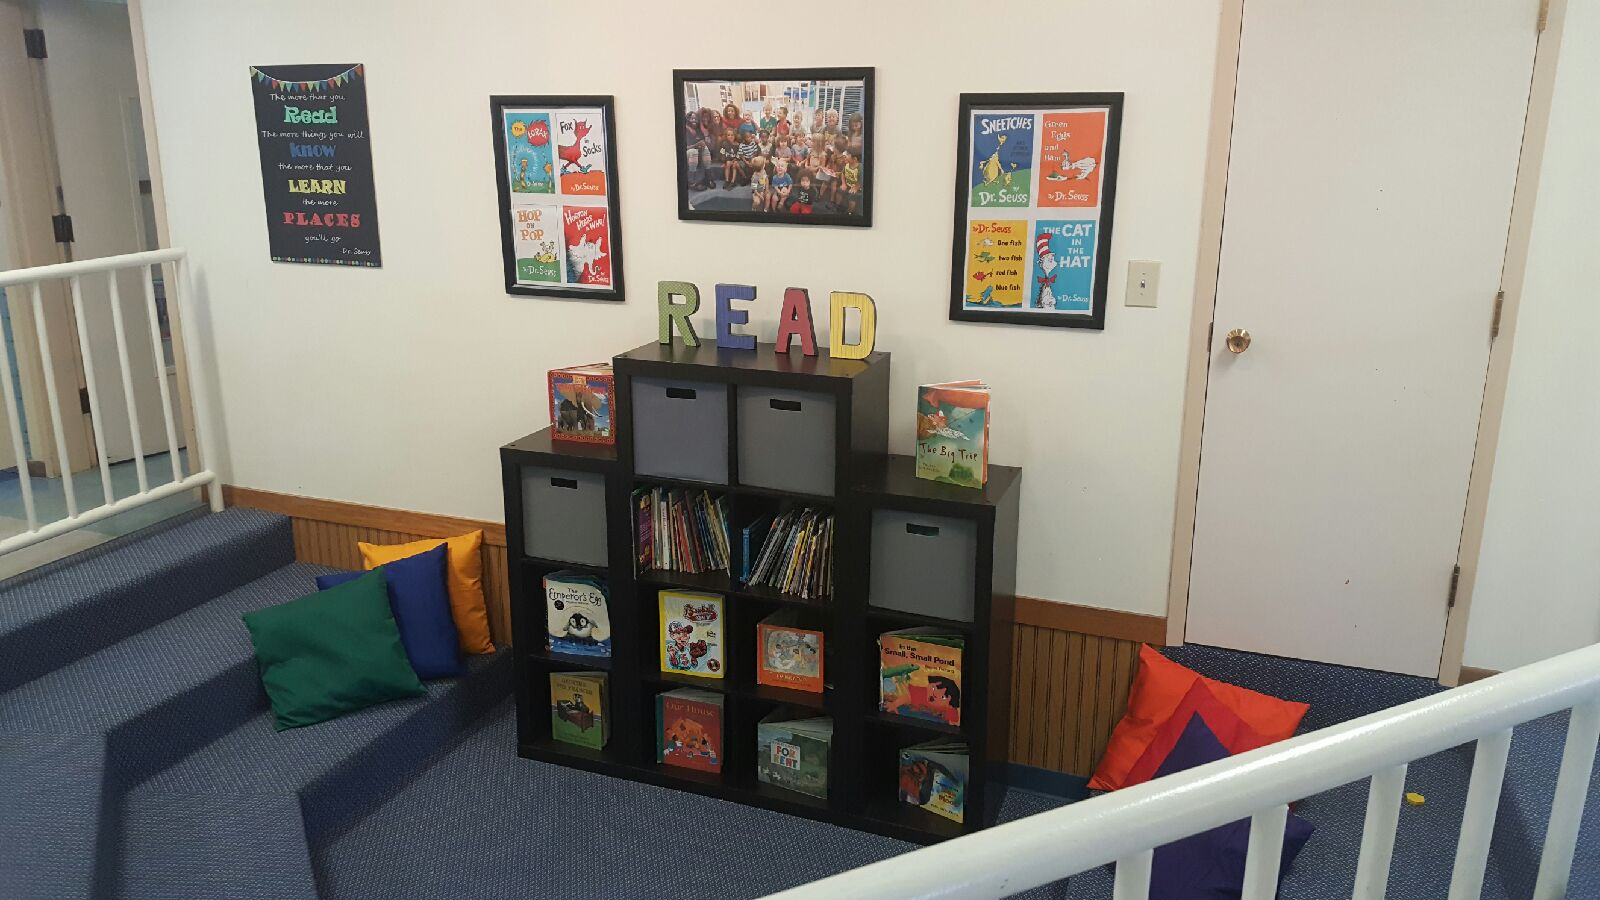 Our center library is a community area for all classrooms to visit and checkout books.  We use this space to increase literacy and create a common interest with every classroom.